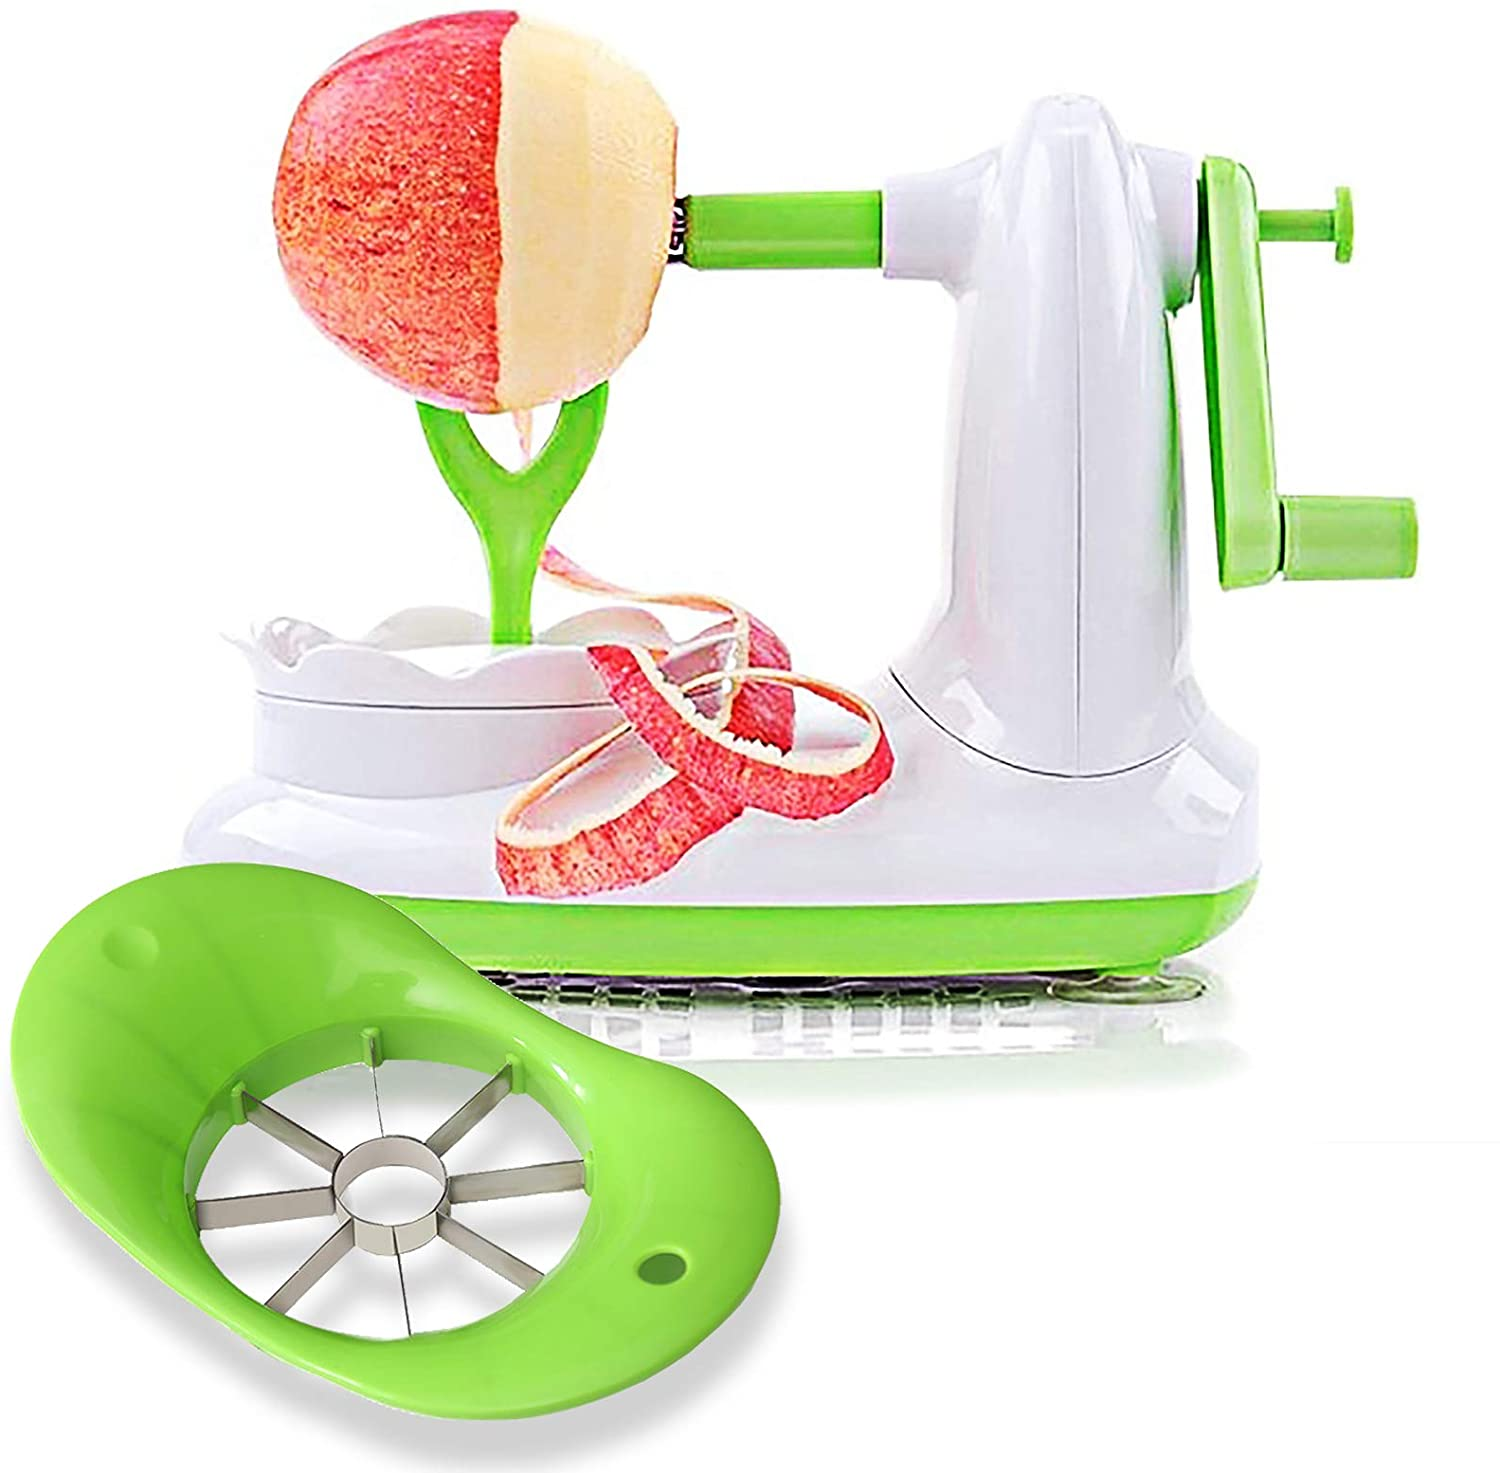 EZMO Apple Peeler Pear El Paso Mall with and Wedges Slicer SALENEW very popular Co 8